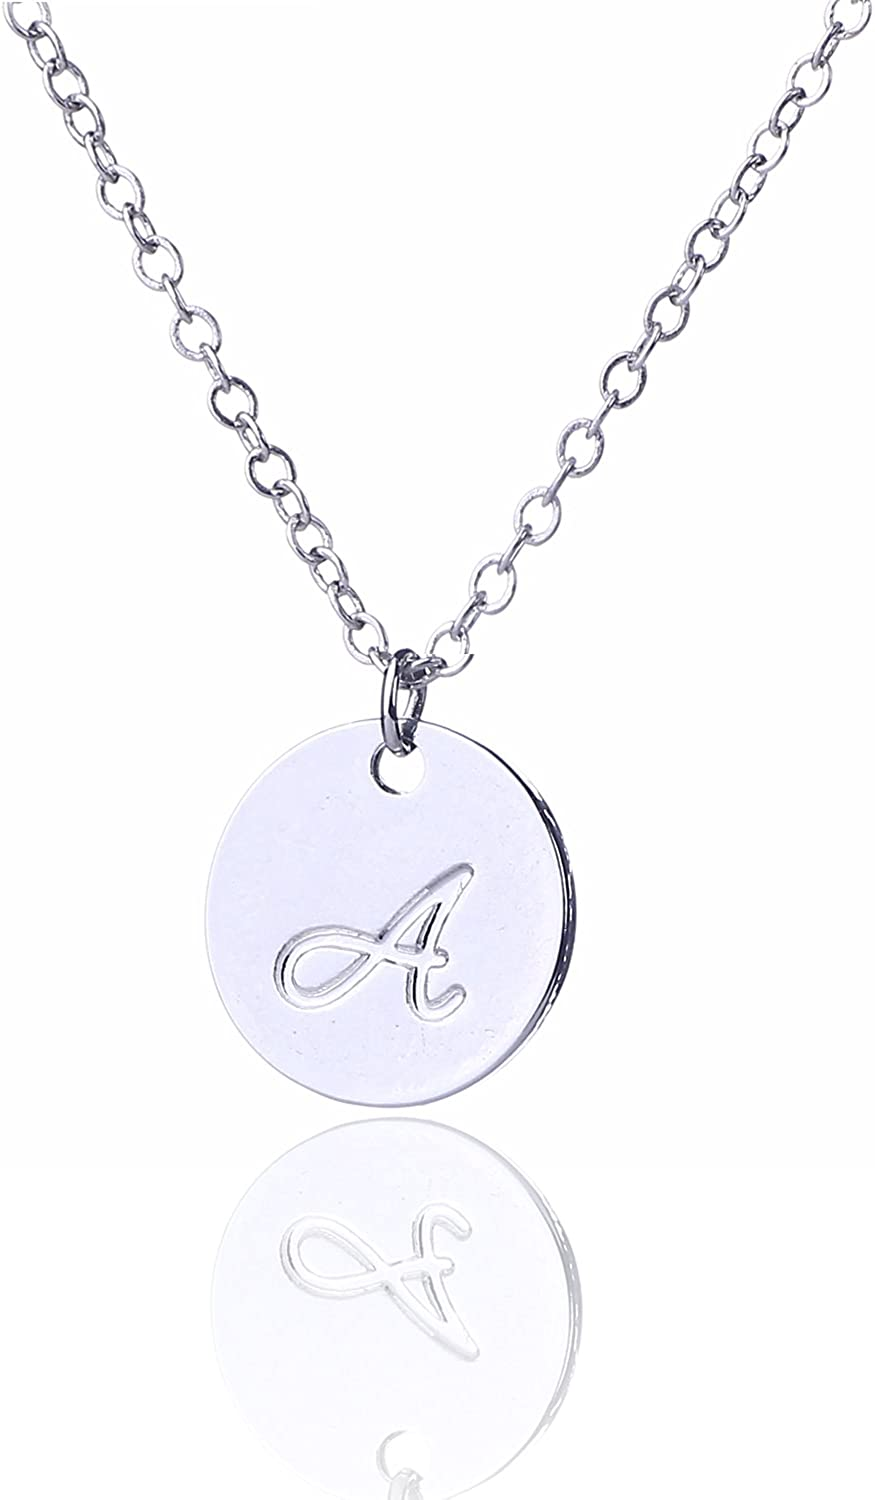 Monogram Initial Necklace Personalized Letter J Small Charm STERLING SILVER